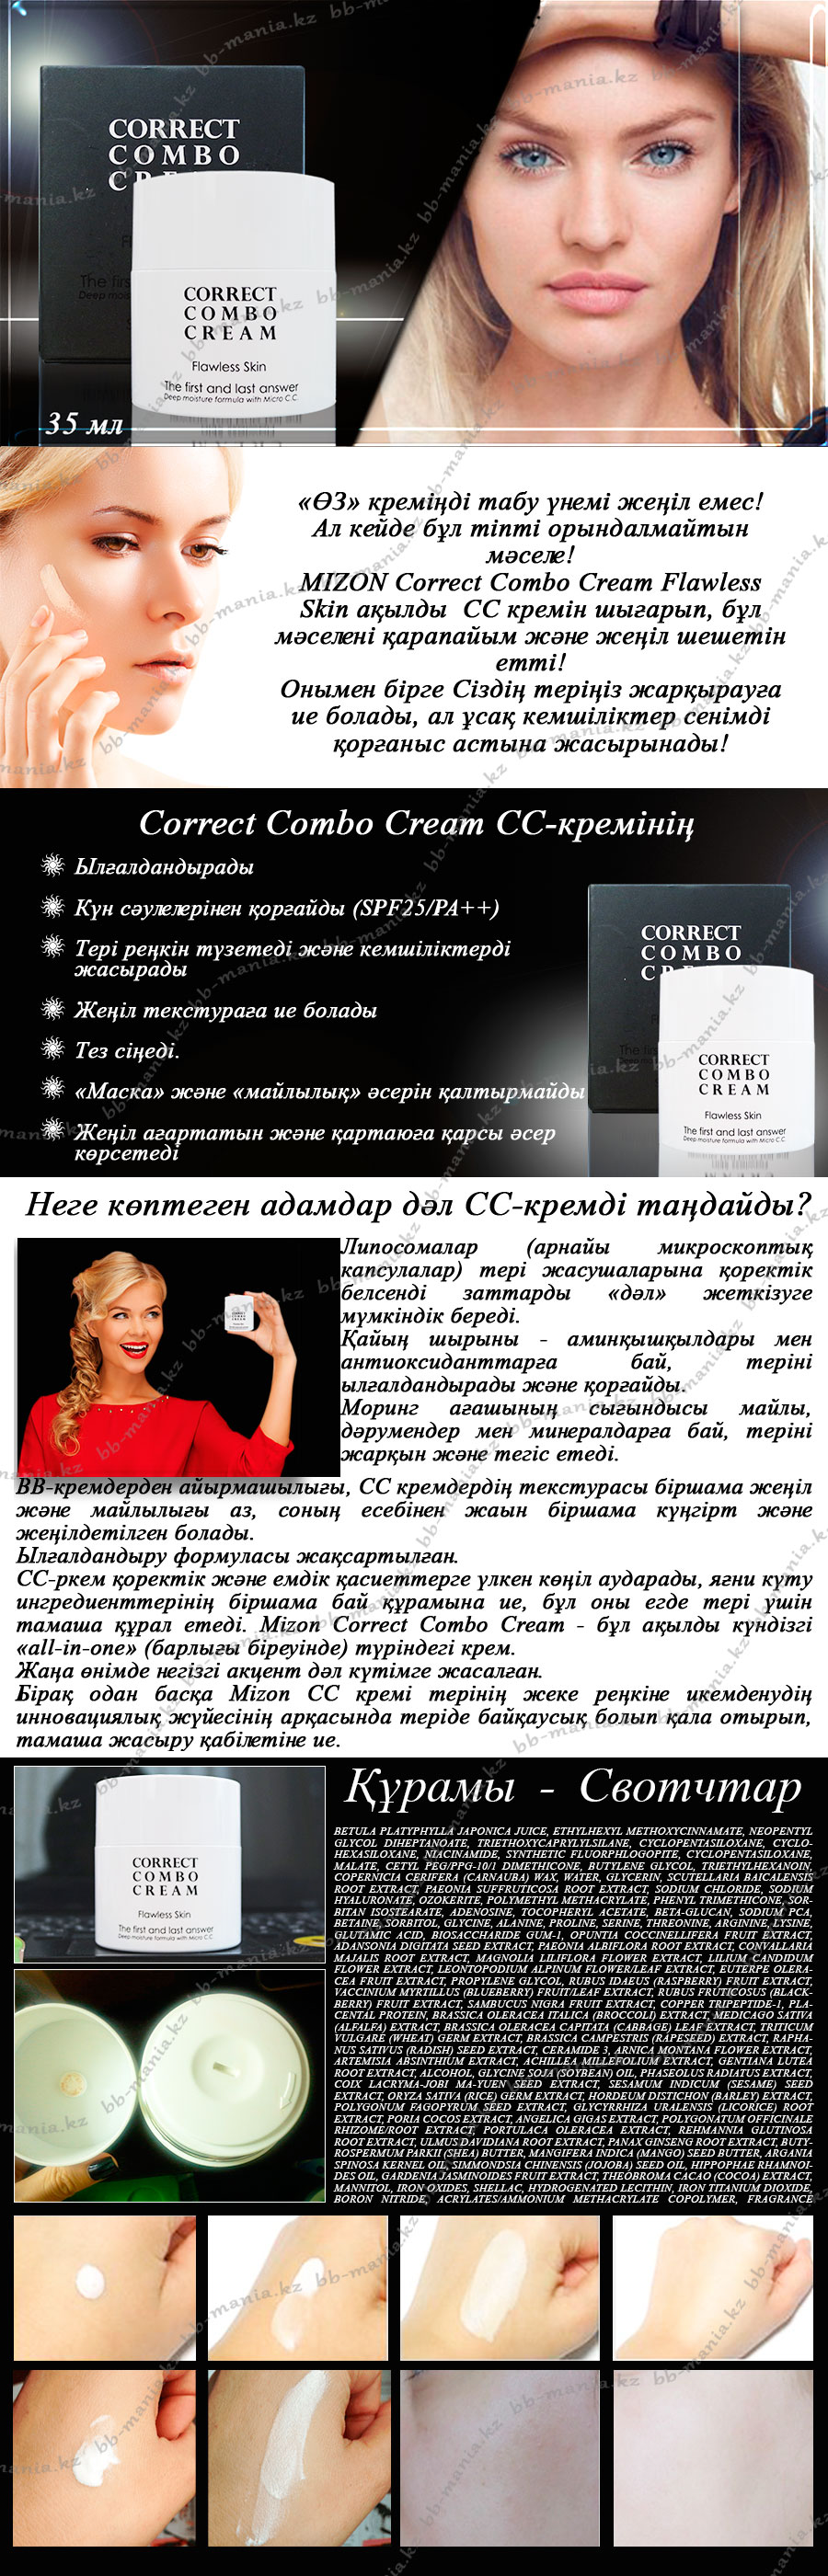 Correct-Combo-Cream-Flawless-Skin-[Mizon]-кз-min